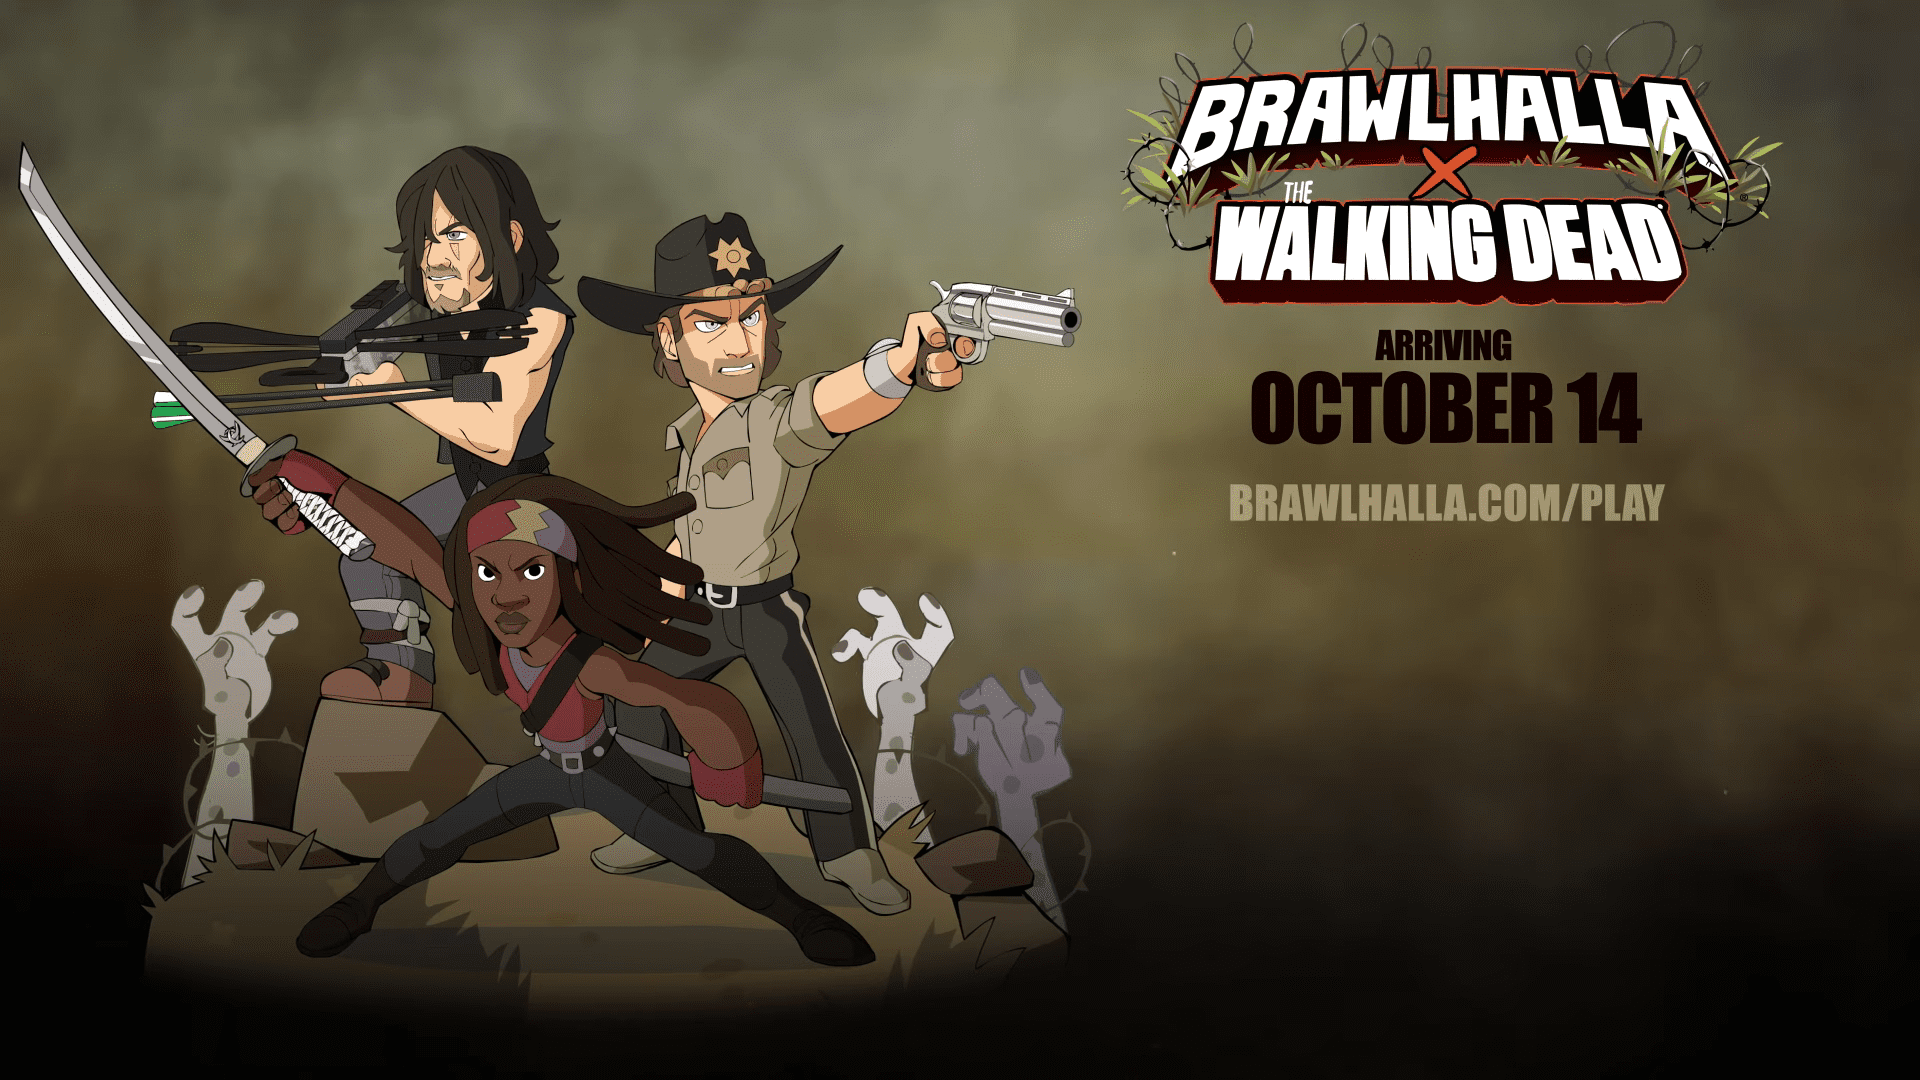 The Walking Dead and Brawlhalla Crossover